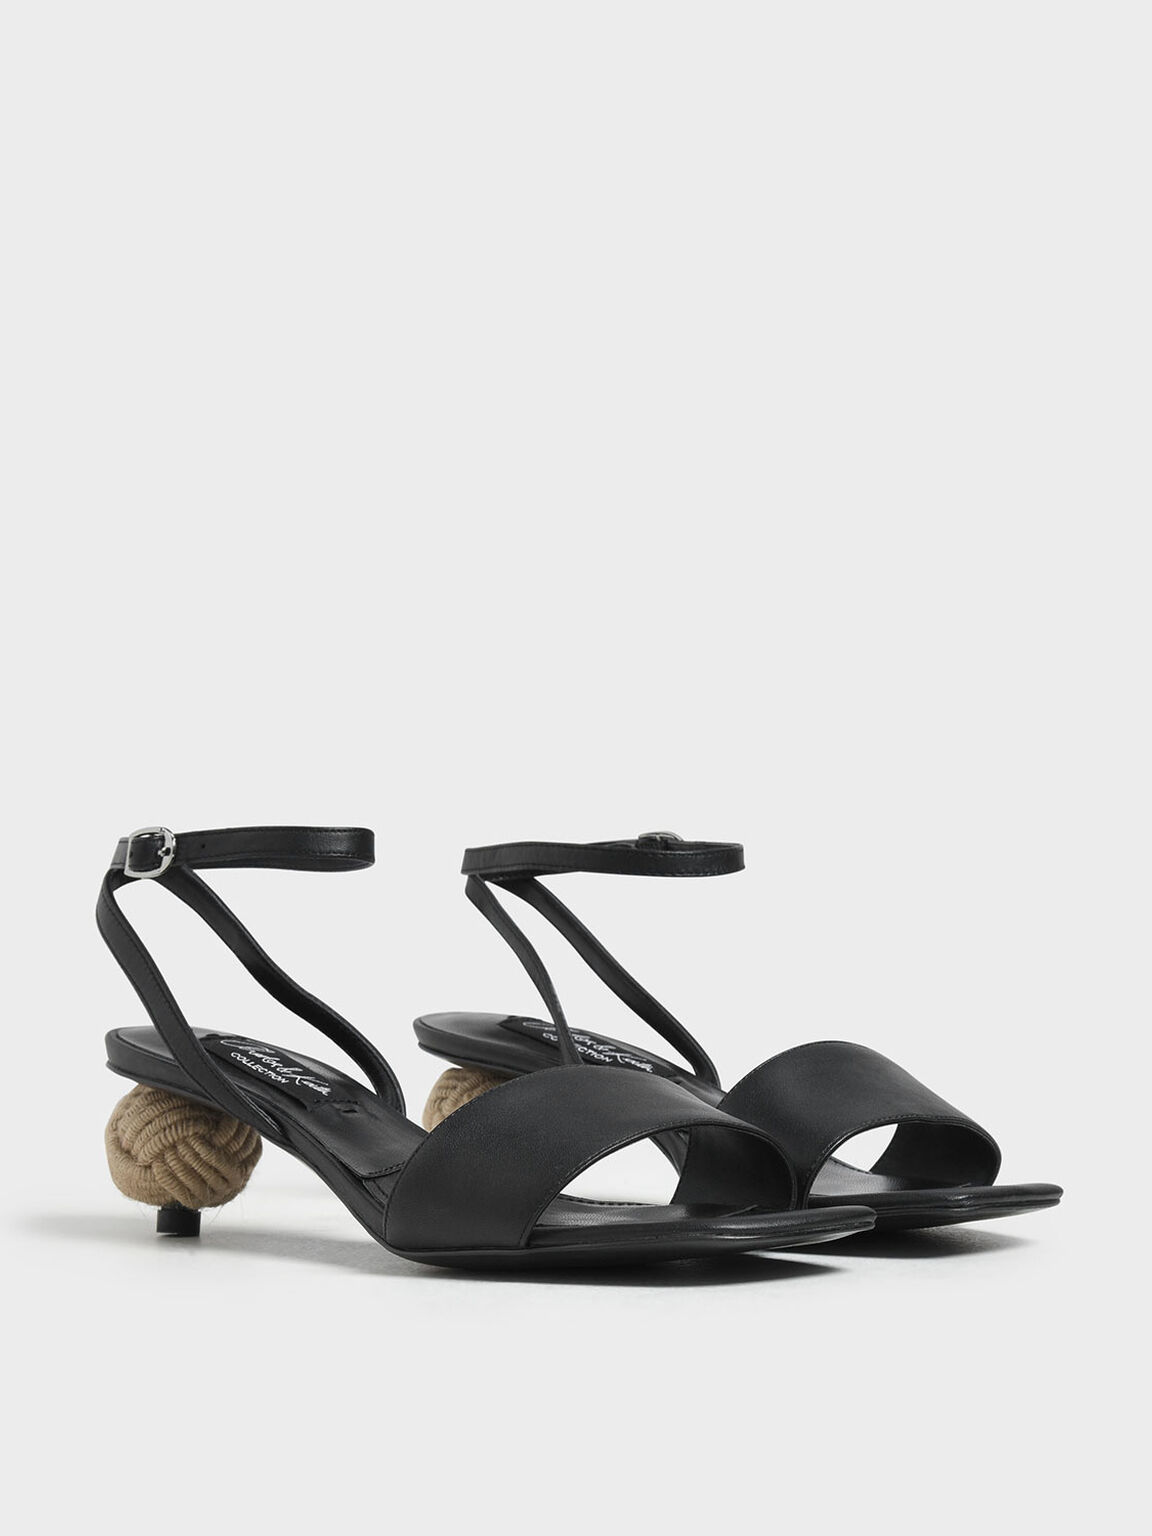 Spherical Heel Leather Sandals, Black, hi-res